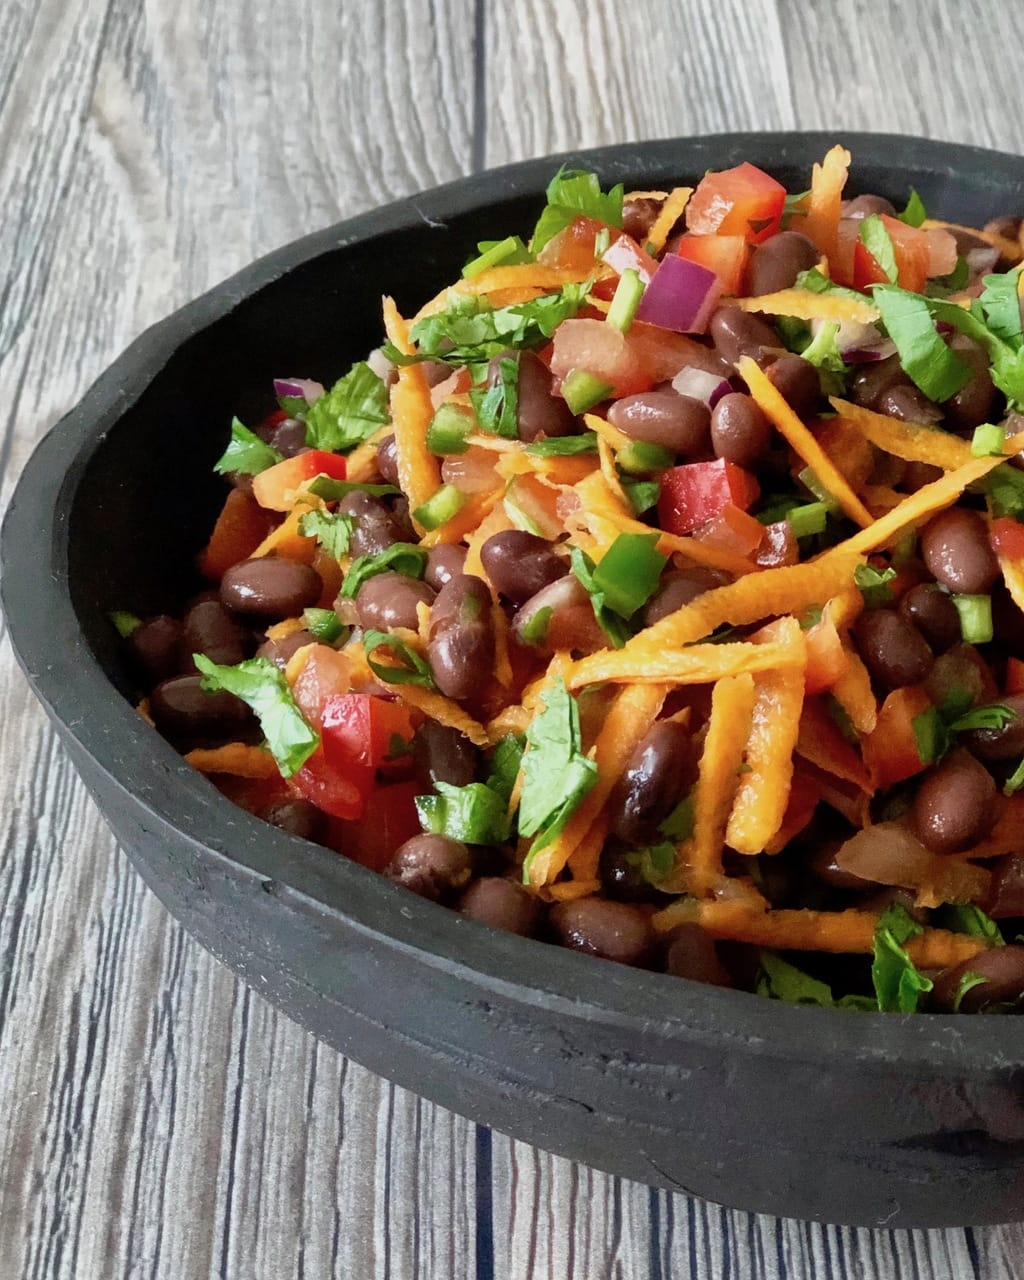 Healthy Taco Salad with black beans shredded carrots and cilantro in a bowl